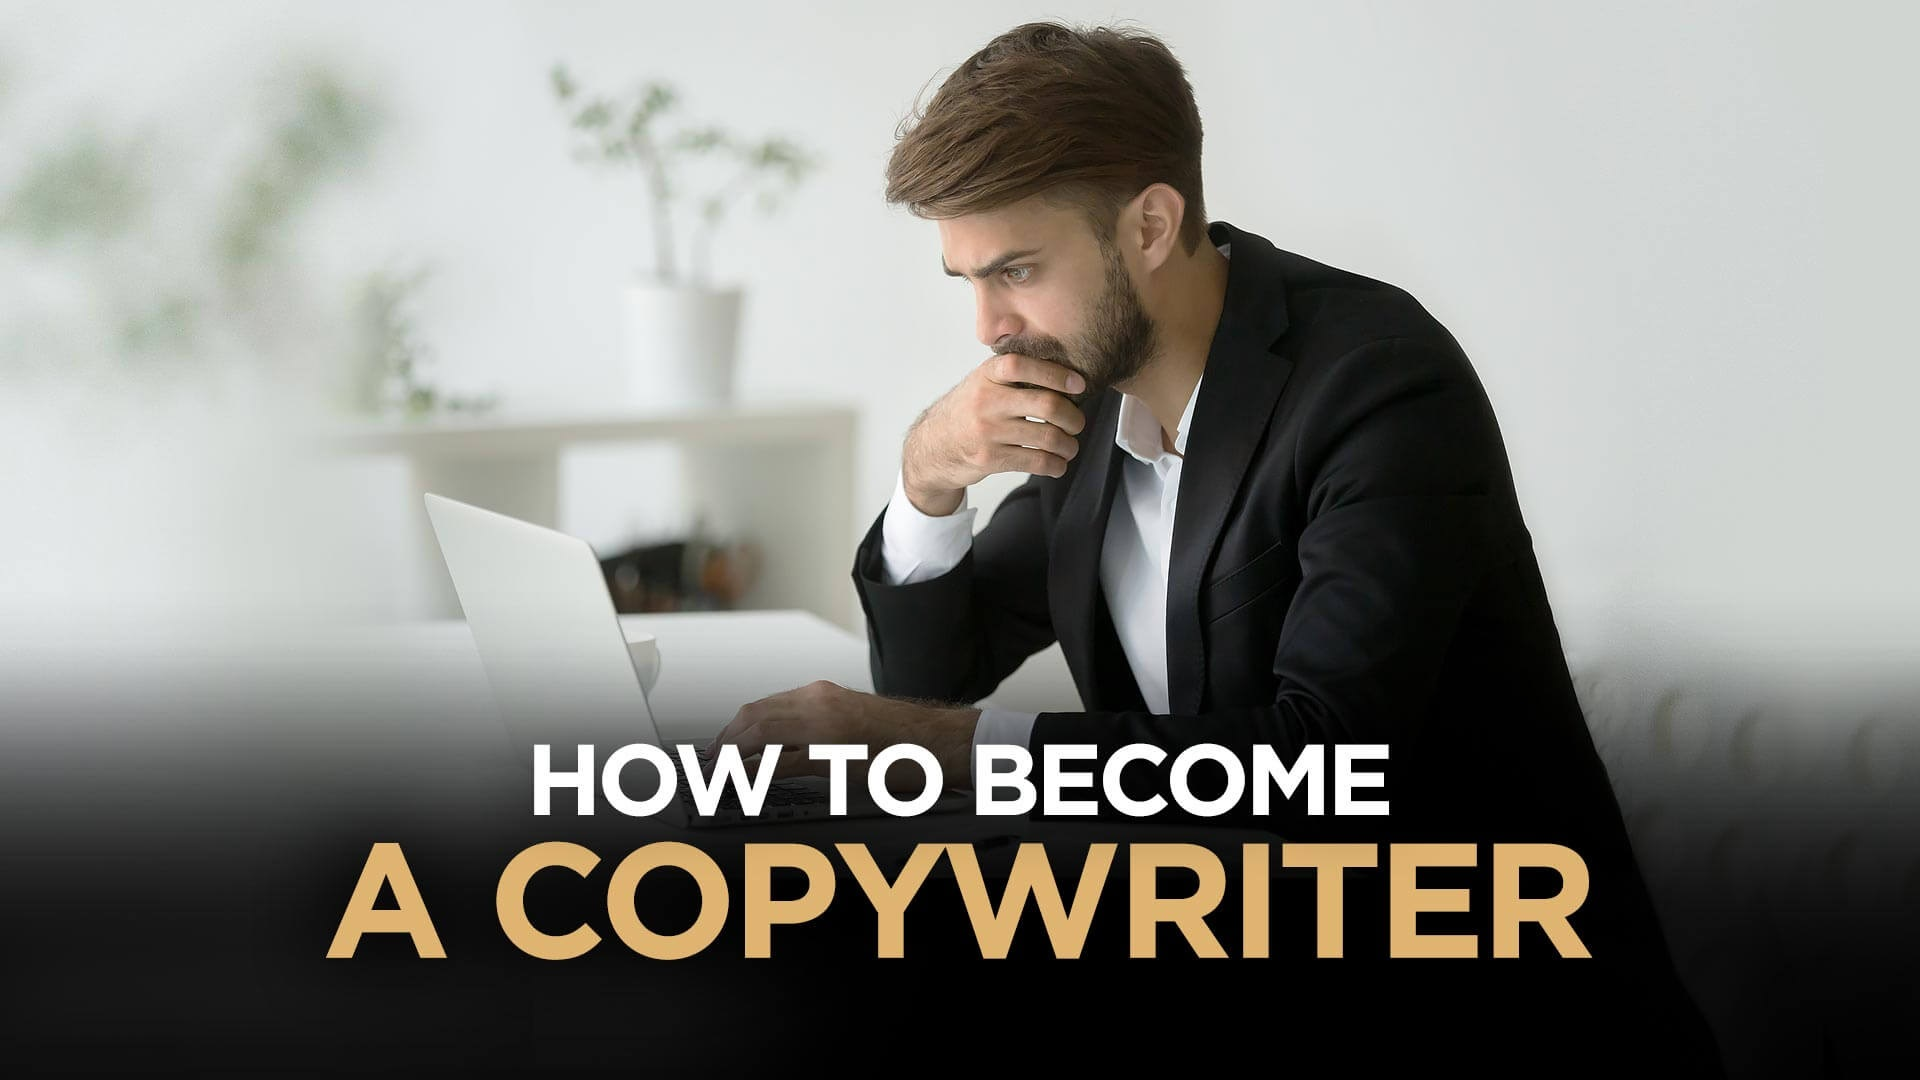 What they do copywriters really do?